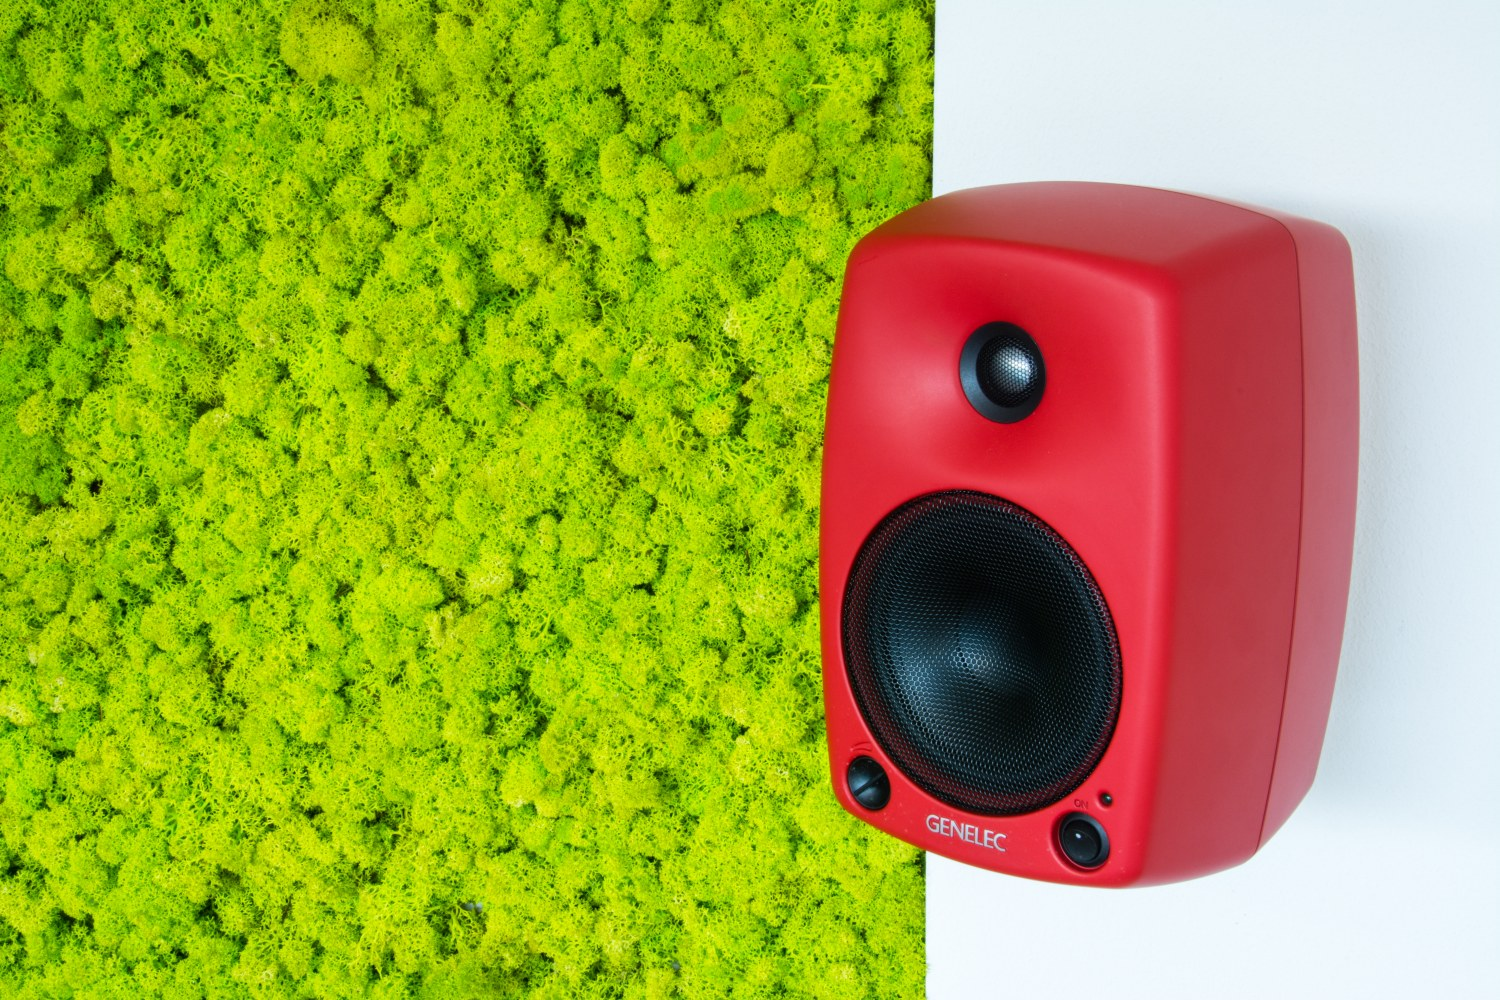 Sound System acoustic design and testing